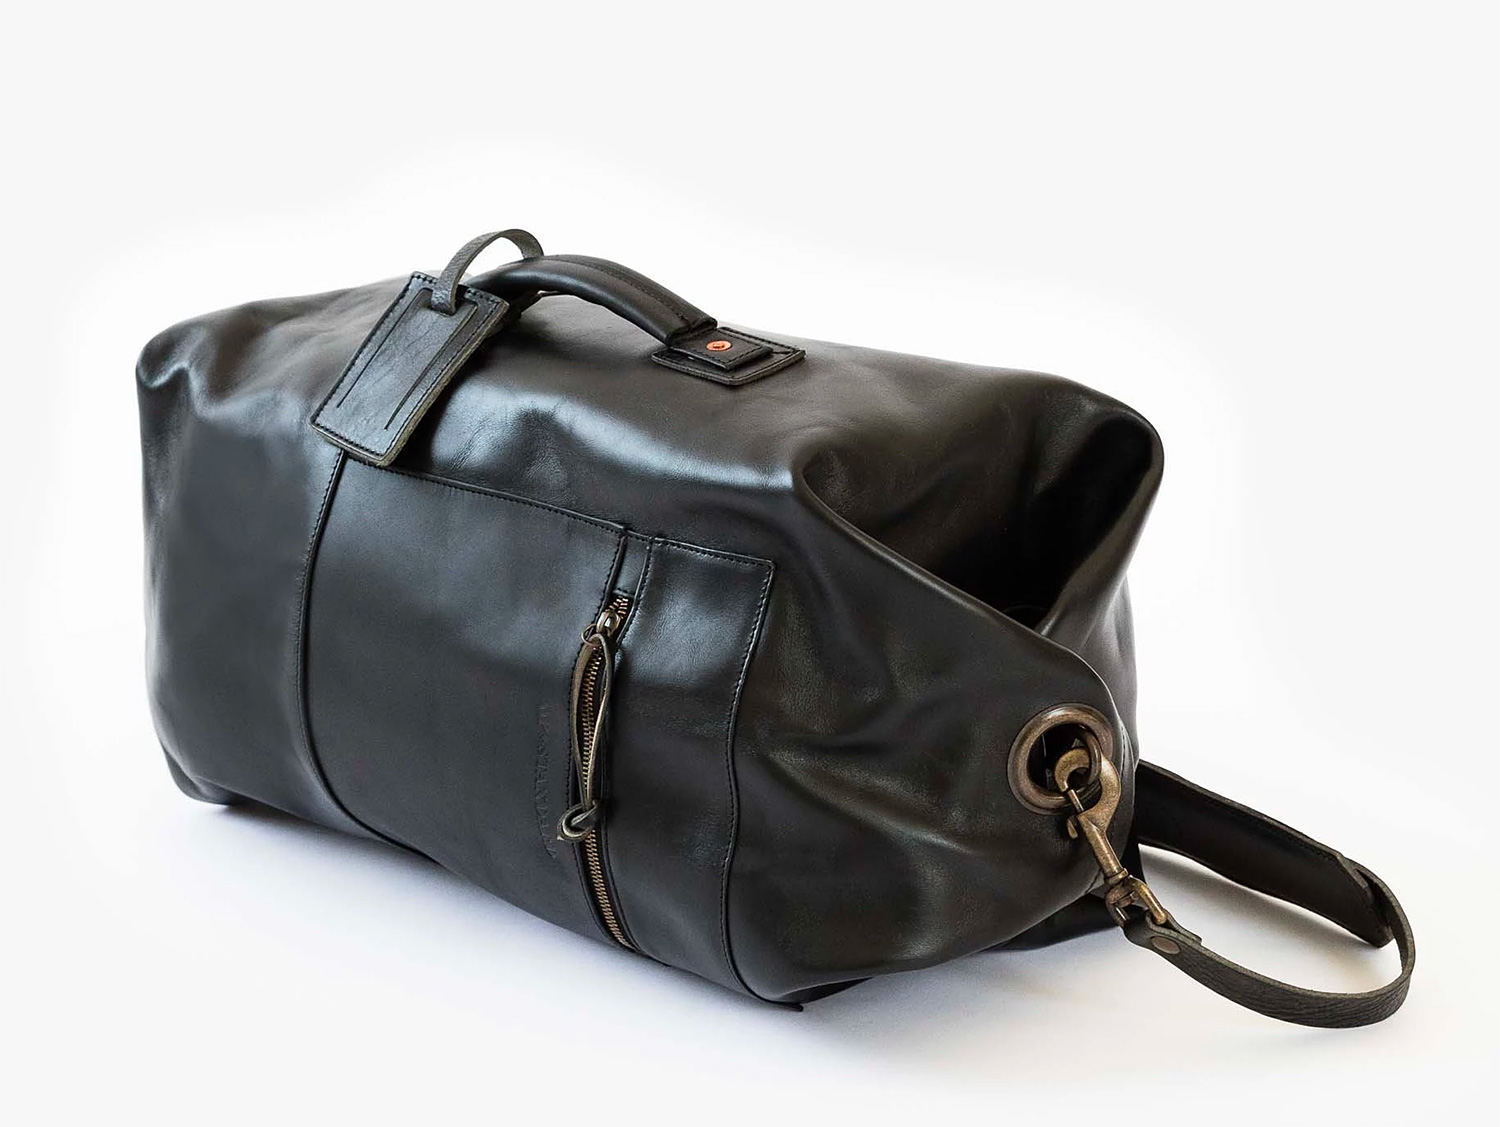 This Military Duffle Blends a Timeless Design with Leather Luxe at werd.com